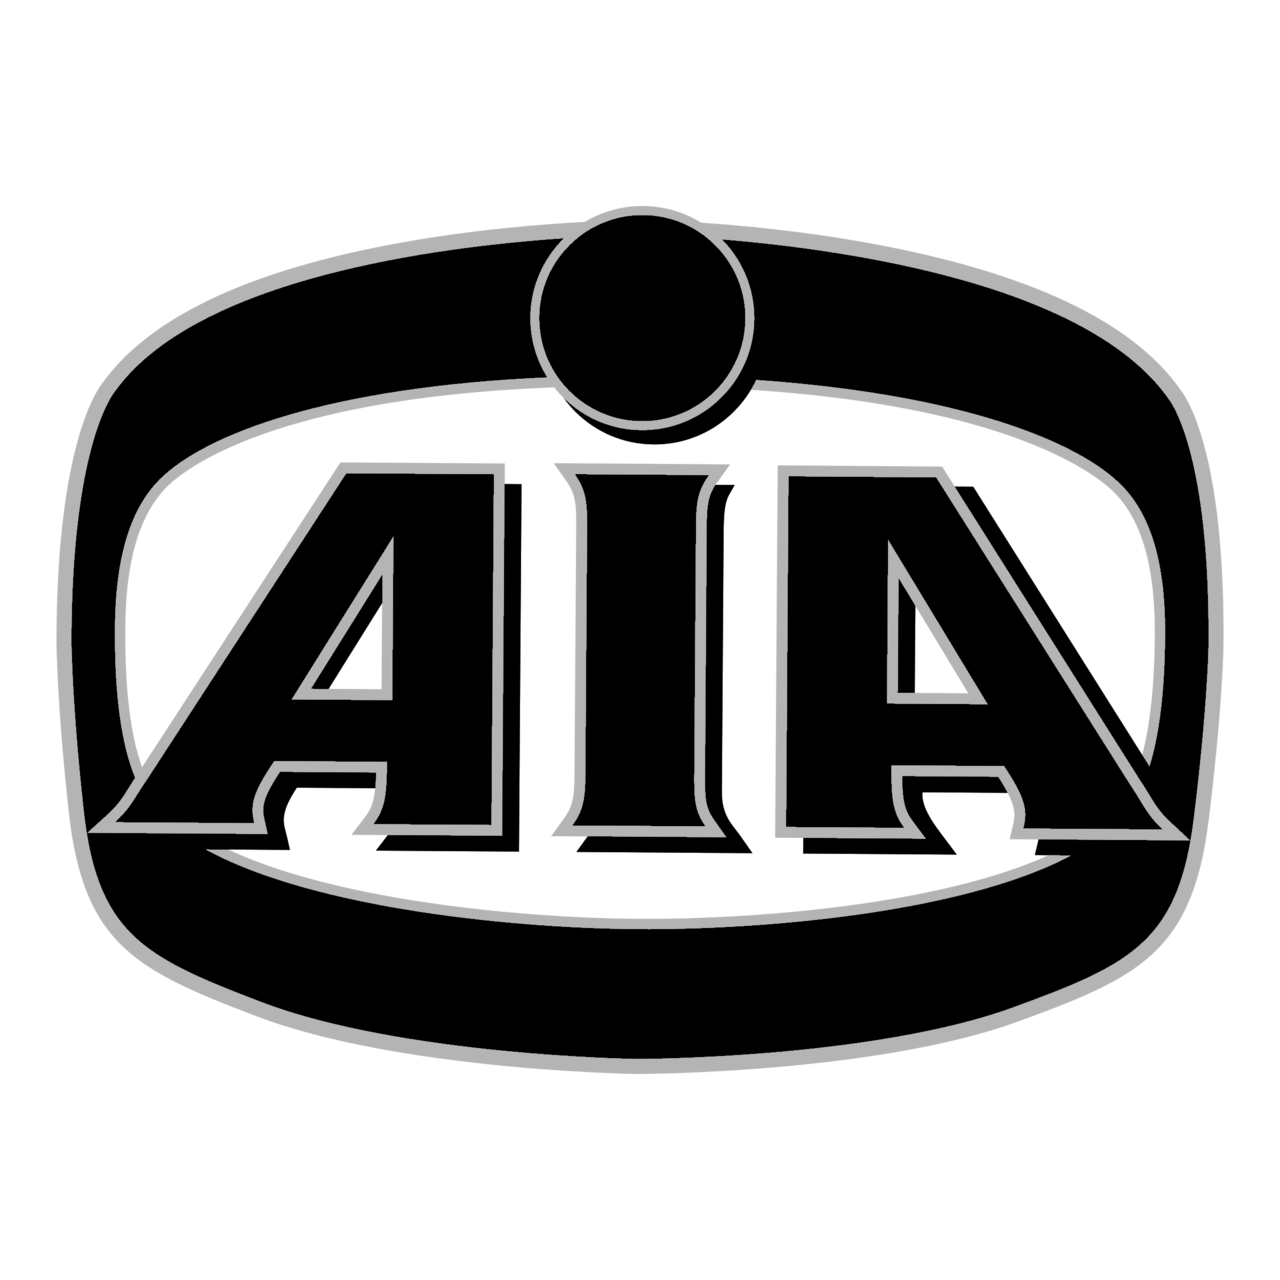 aia-logo-black-and-white